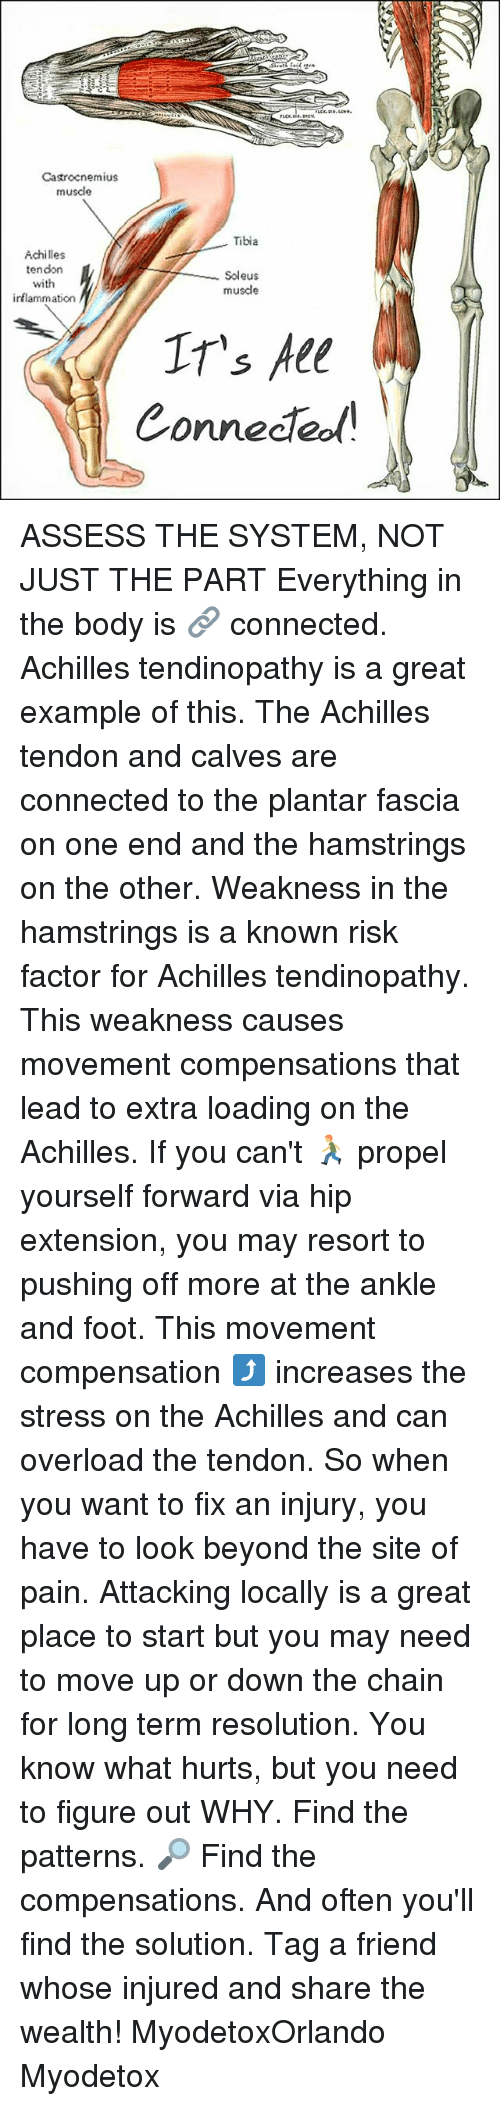 assess: Castrocnemius  musde  Tibia  Achilles  tendon  Soleus  with  muscle  inflammation  IT's All  Connected ASSESS THE SYSTEM, NOT JUST THE PART Everything in the body is 🔗 connected. Achilles tendinopathy is a great example of this. The Achilles tendon and calves are connected to the plantar fascia on one end and the hamstrings on the other. Weakness in the hamstrings is a known risk factor for Achilles tendinopathy. This weakness causes movement compensations that lead to extra loading on the Achilles. If you can't 🏃 propel yourself forward via hip extension, you may resort to pushing off more at the ankle and foot. This movement compensation ⤴ increases the stress on the Achilles and can overload the tendon. So when you want to fix an injury, you have to look beyond the site of pain. Attacking locally is a great place to start but you may need to move up or down the chain for long term resolution. You know what hurts, but you need to figure out WHY. Find the patterns. 🔎 Find the compensations. And often you'll find the solution. Tag a friend whose injured and share the wealth! MyodetoxOrlando Myodetox